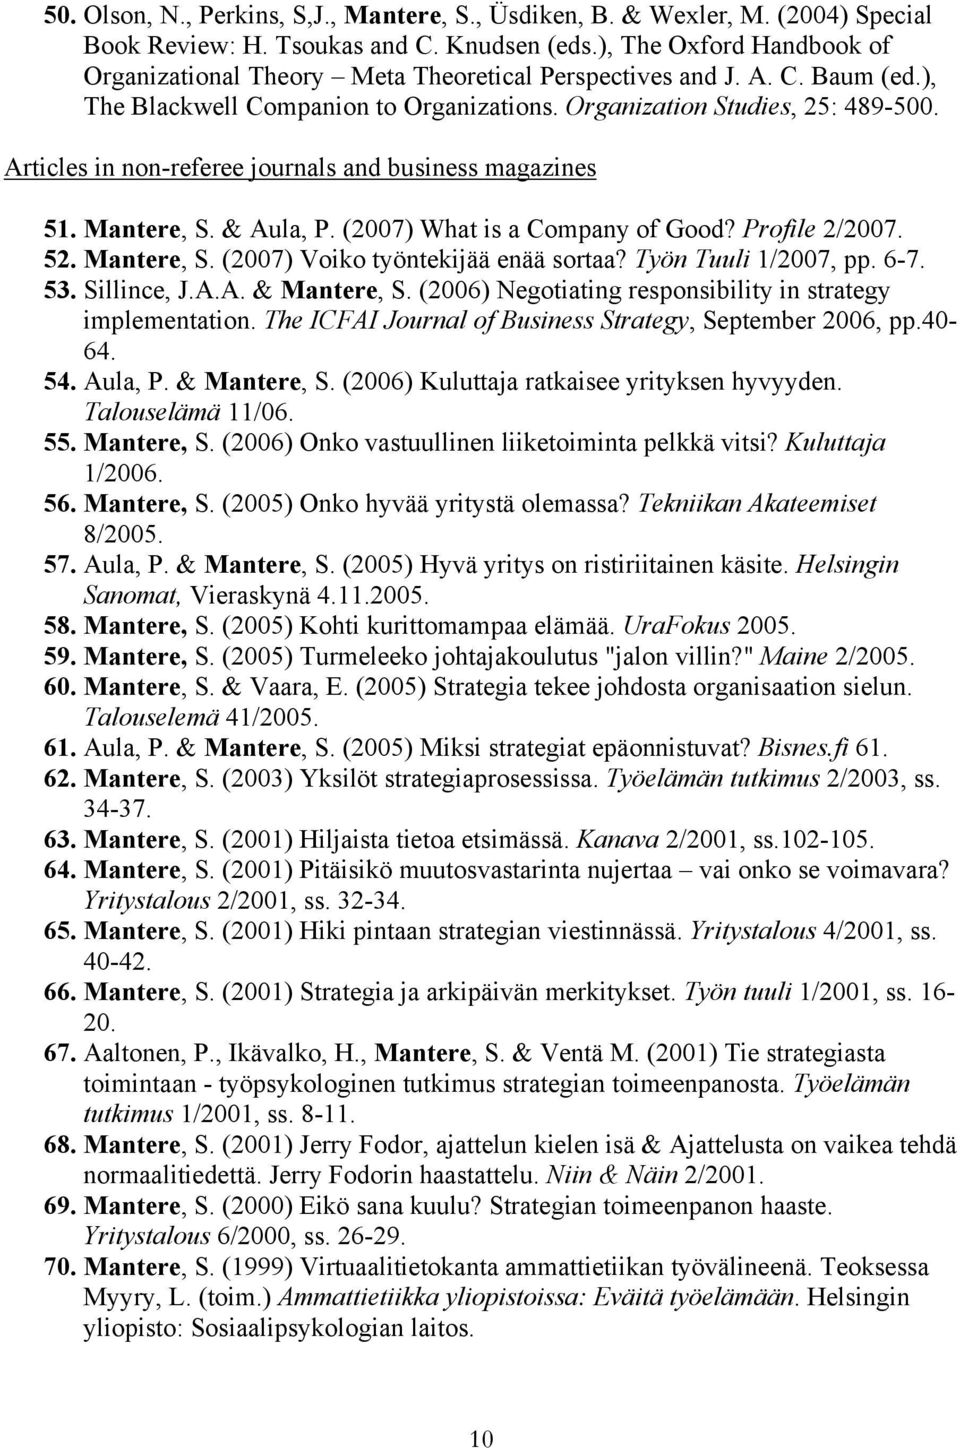 Articles in non-referee journals and business magazines 51. Mantere, S. & Aula, P. (2007) What is a Company of Good? Profile 2/2007. 52. Mantere, S. (2007) Voiko työntekijää enää sortaa?